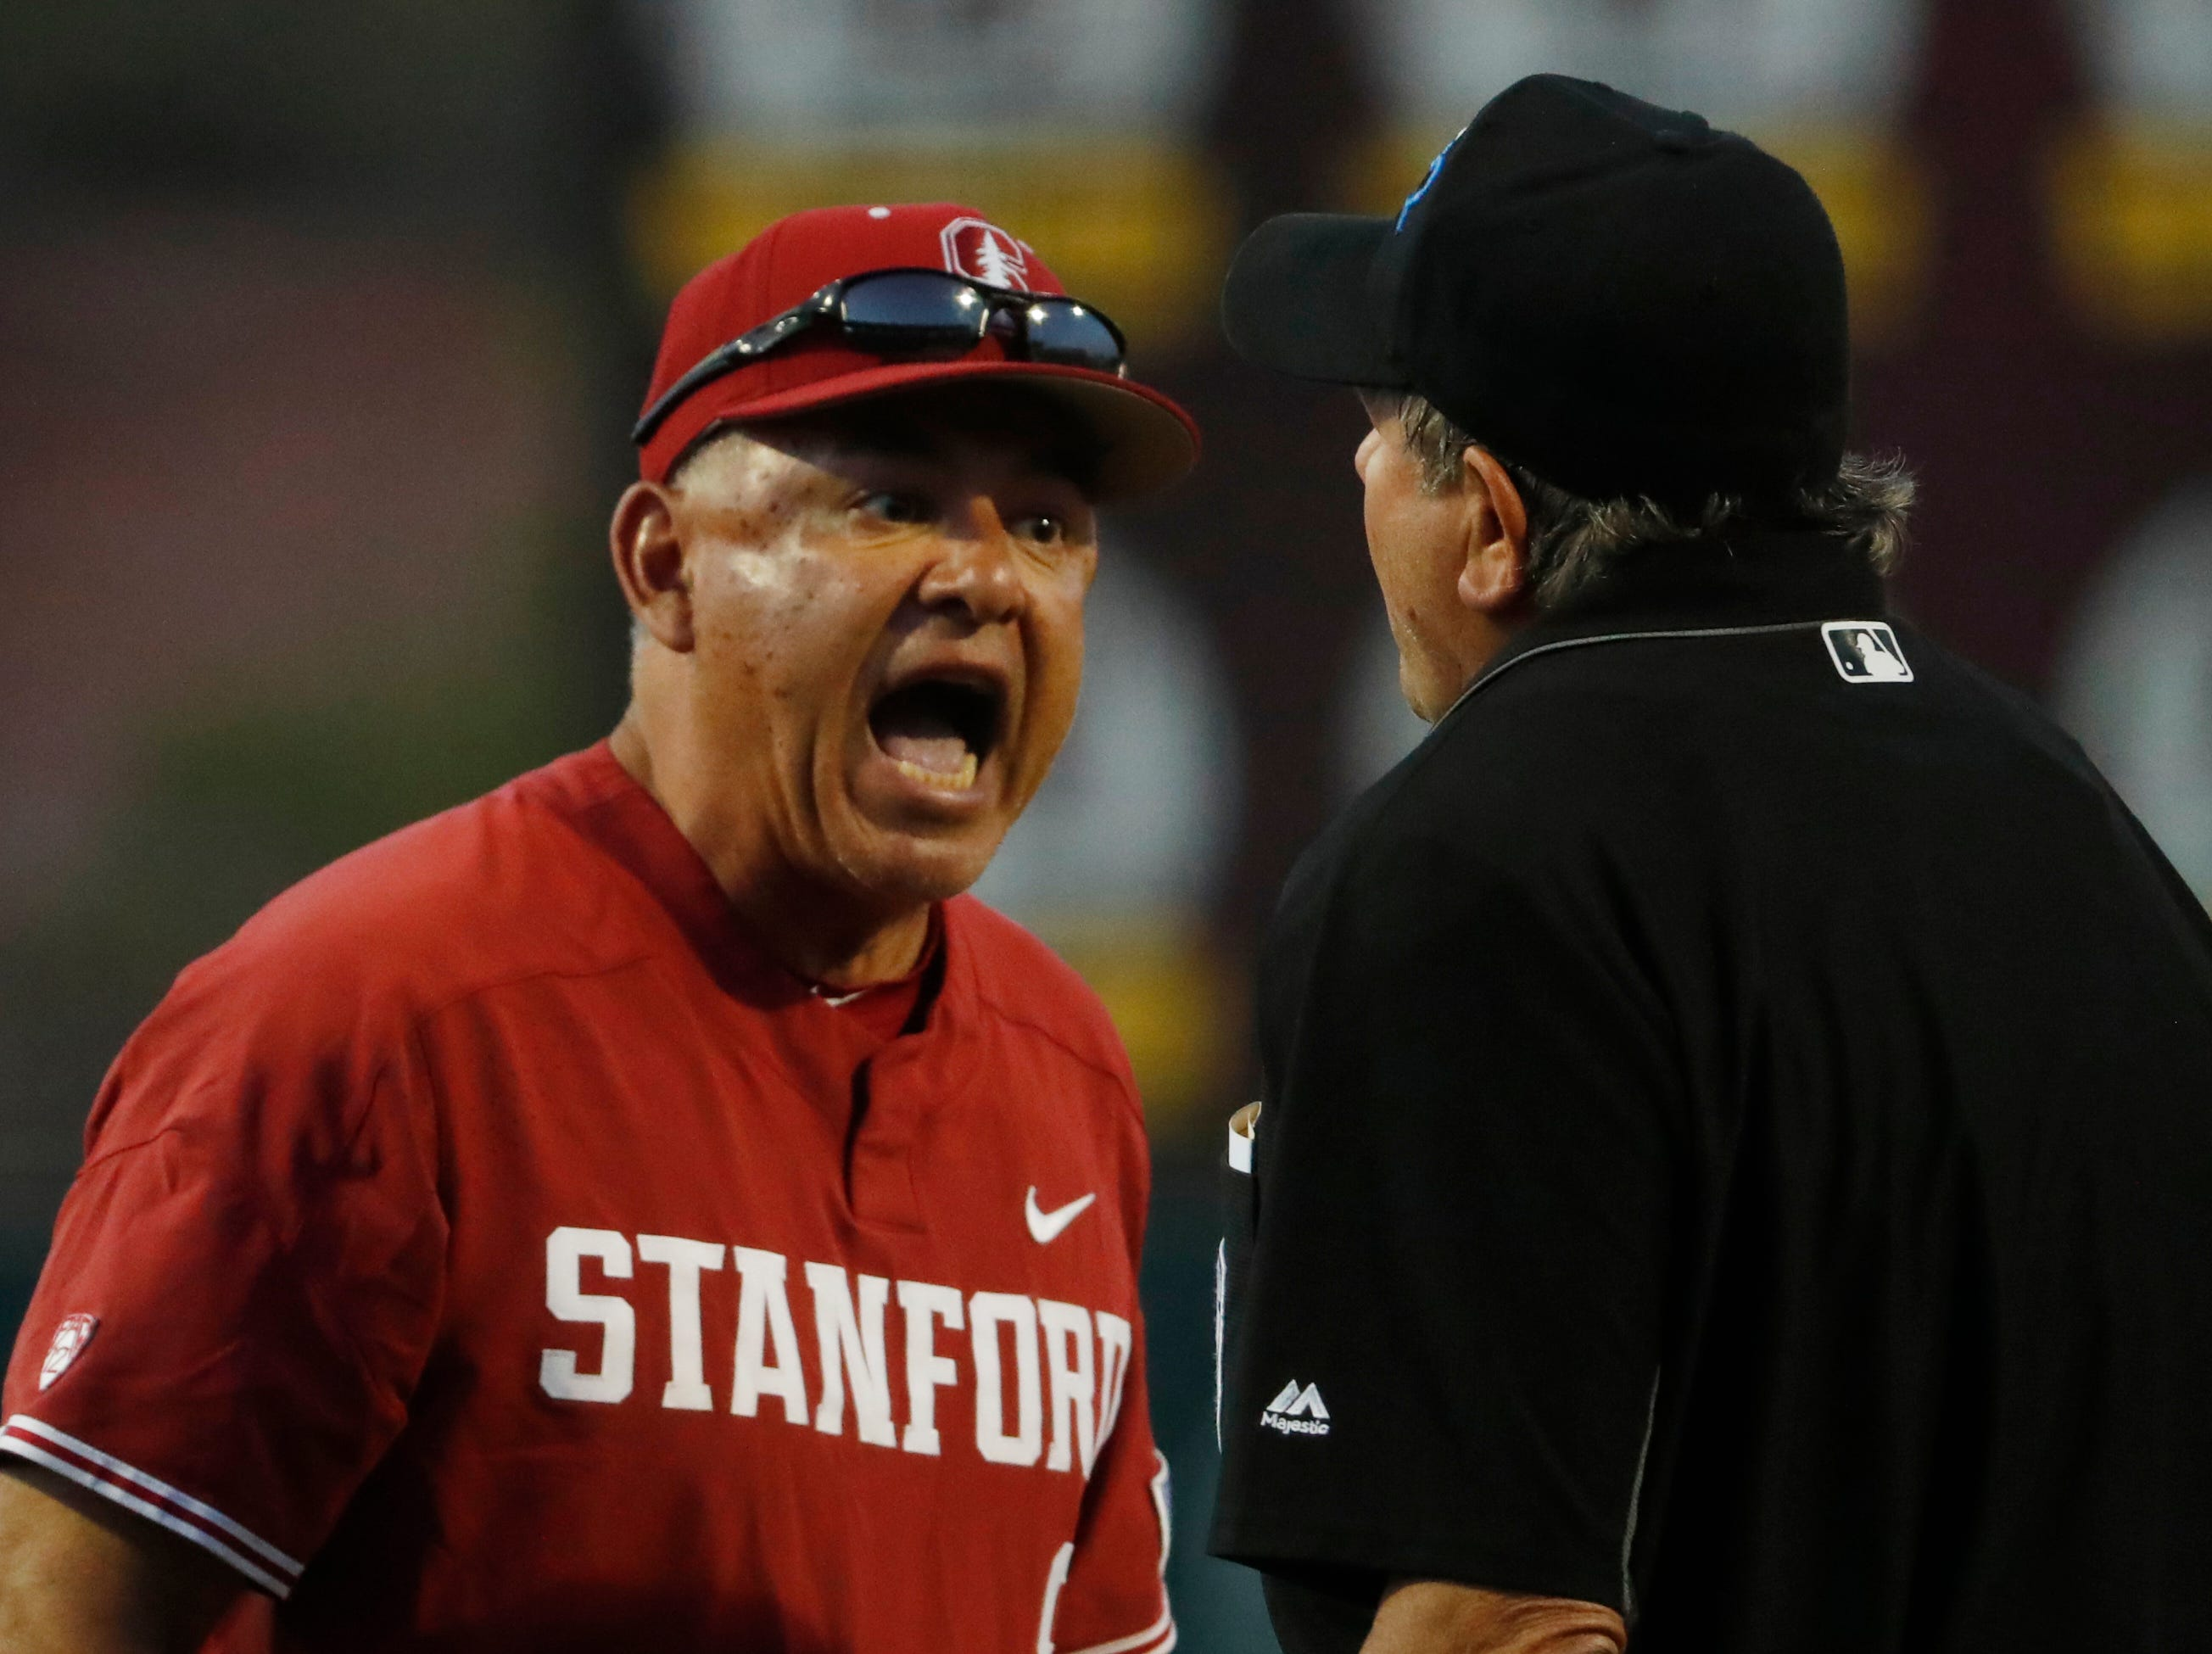 Stanford's head coach David Esquer argues with home plate umpire Joe Burleson after a ground rule double was changed to a home run during the sixth inning at Phoenix Municipal Stadium in Phoenix, Ariz. on May 24, 2019.